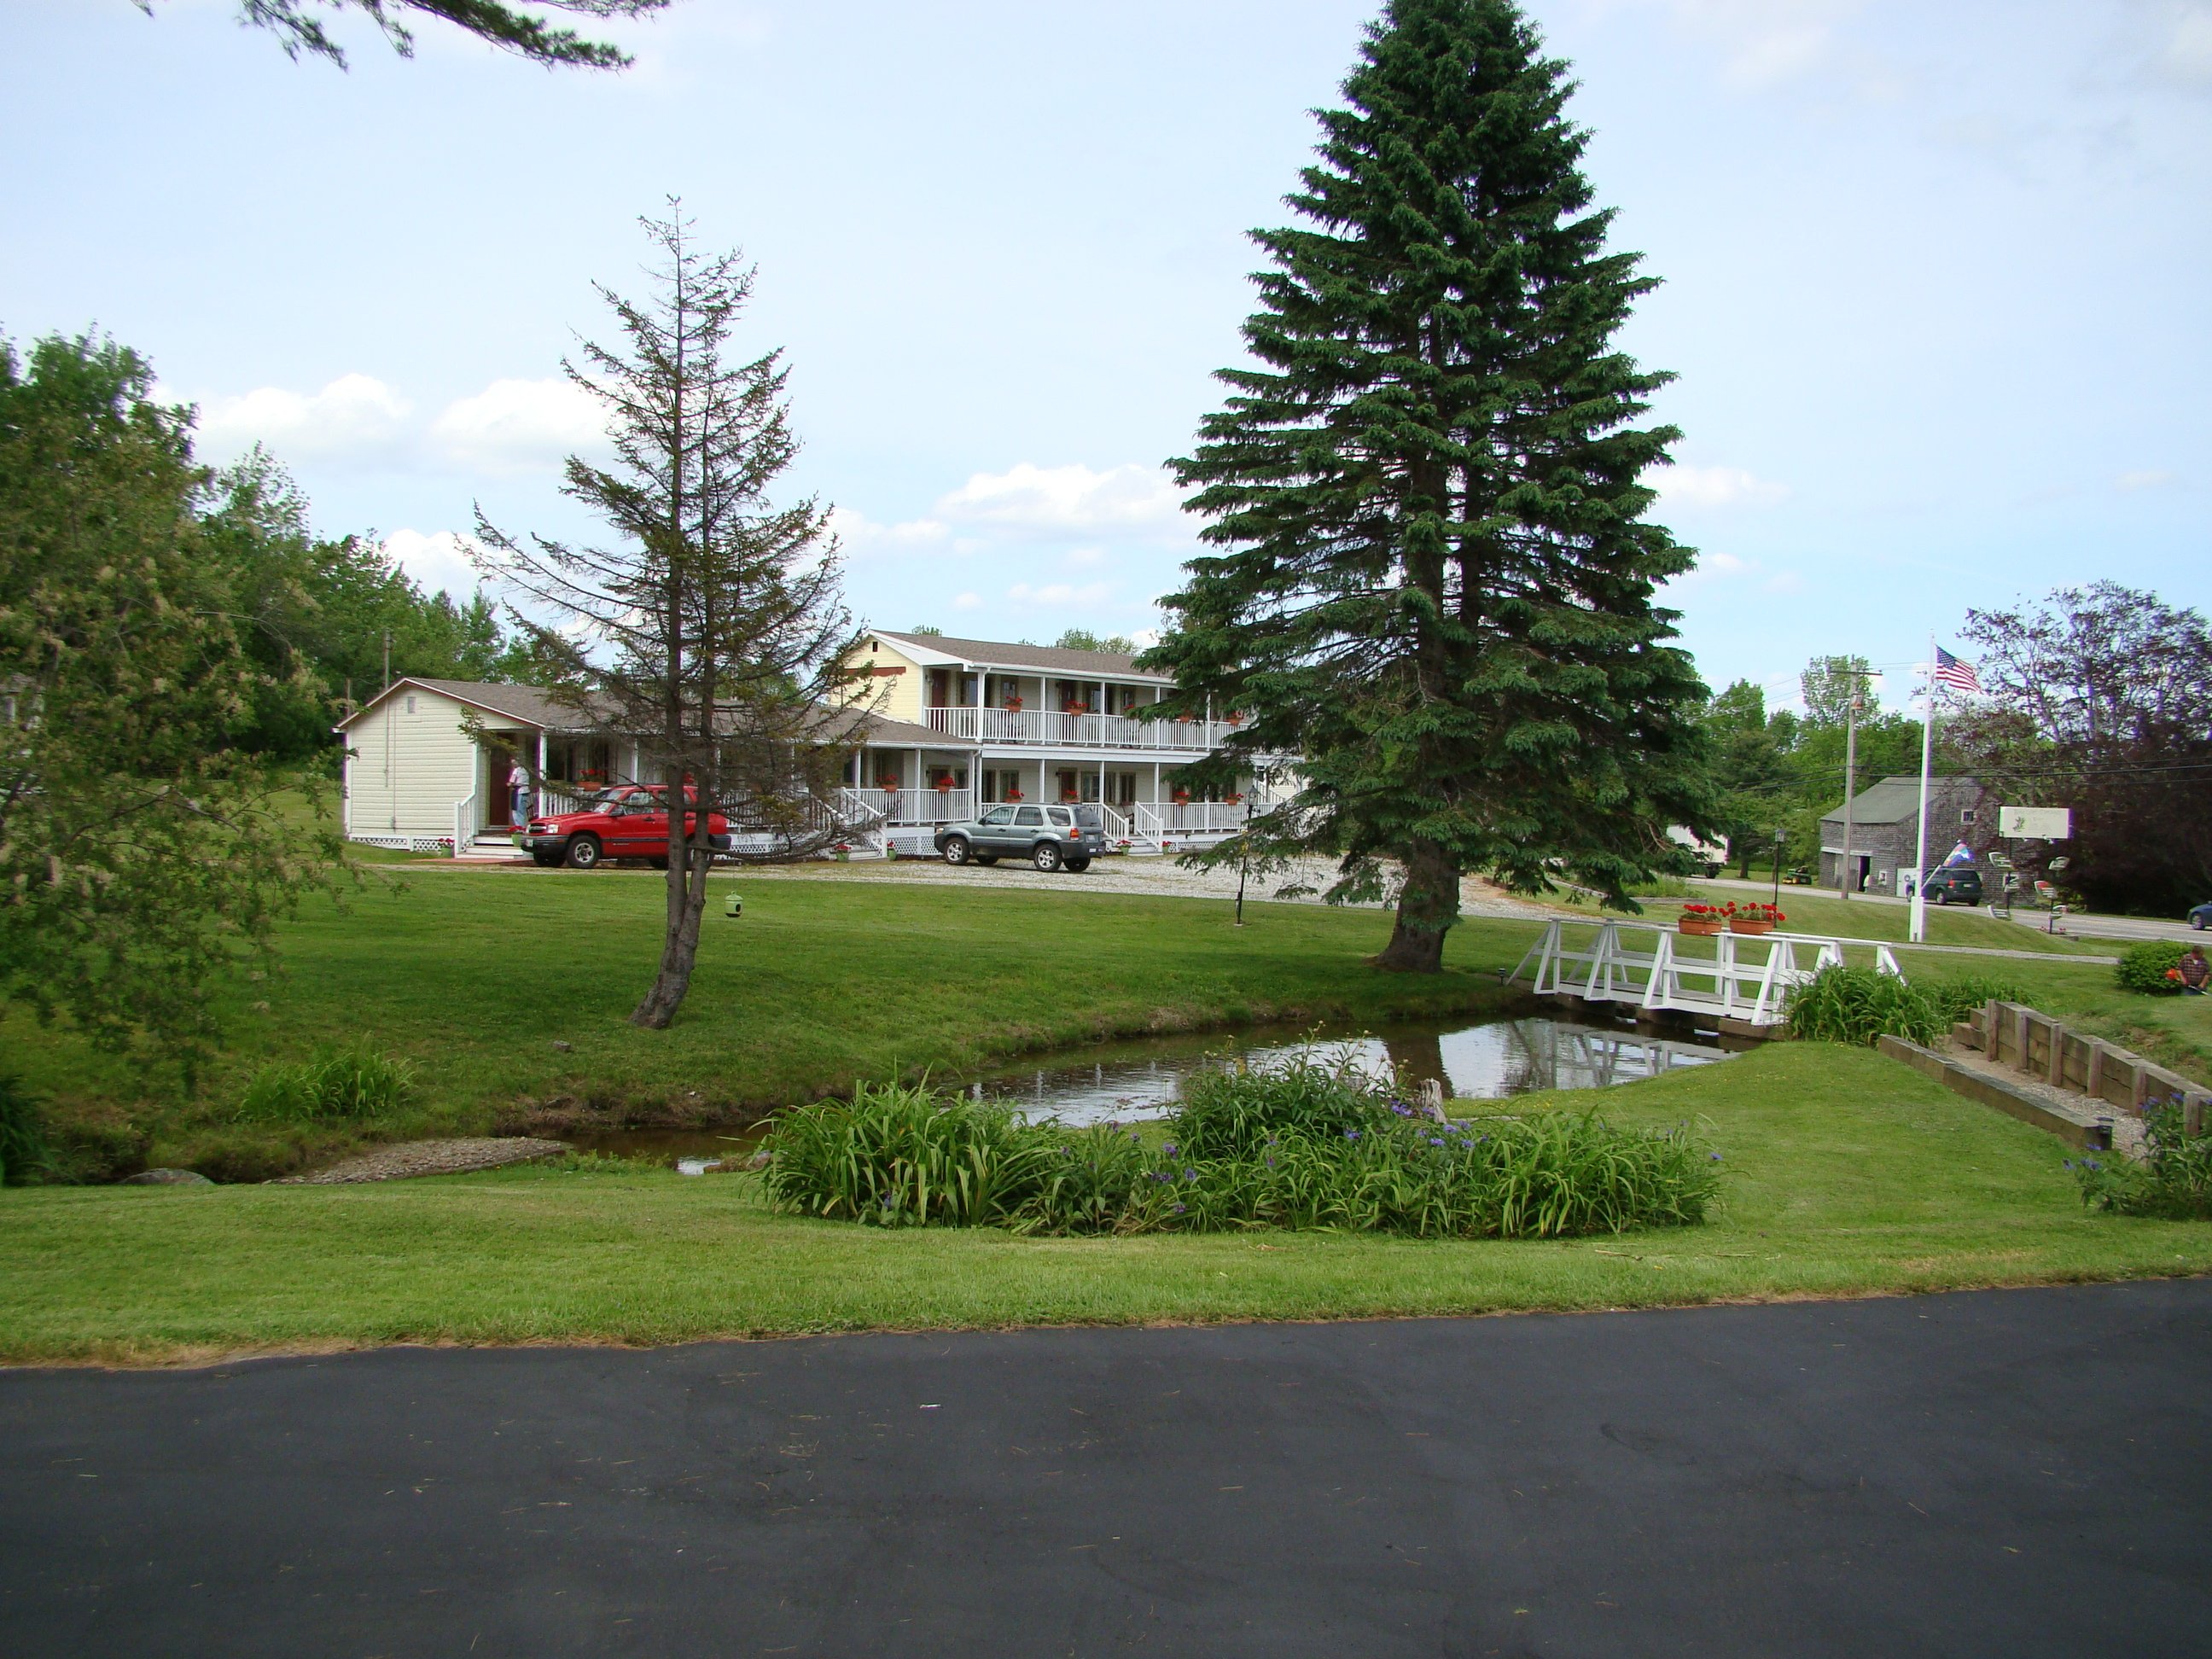 Motel as seen across our pond/stream and park-like property